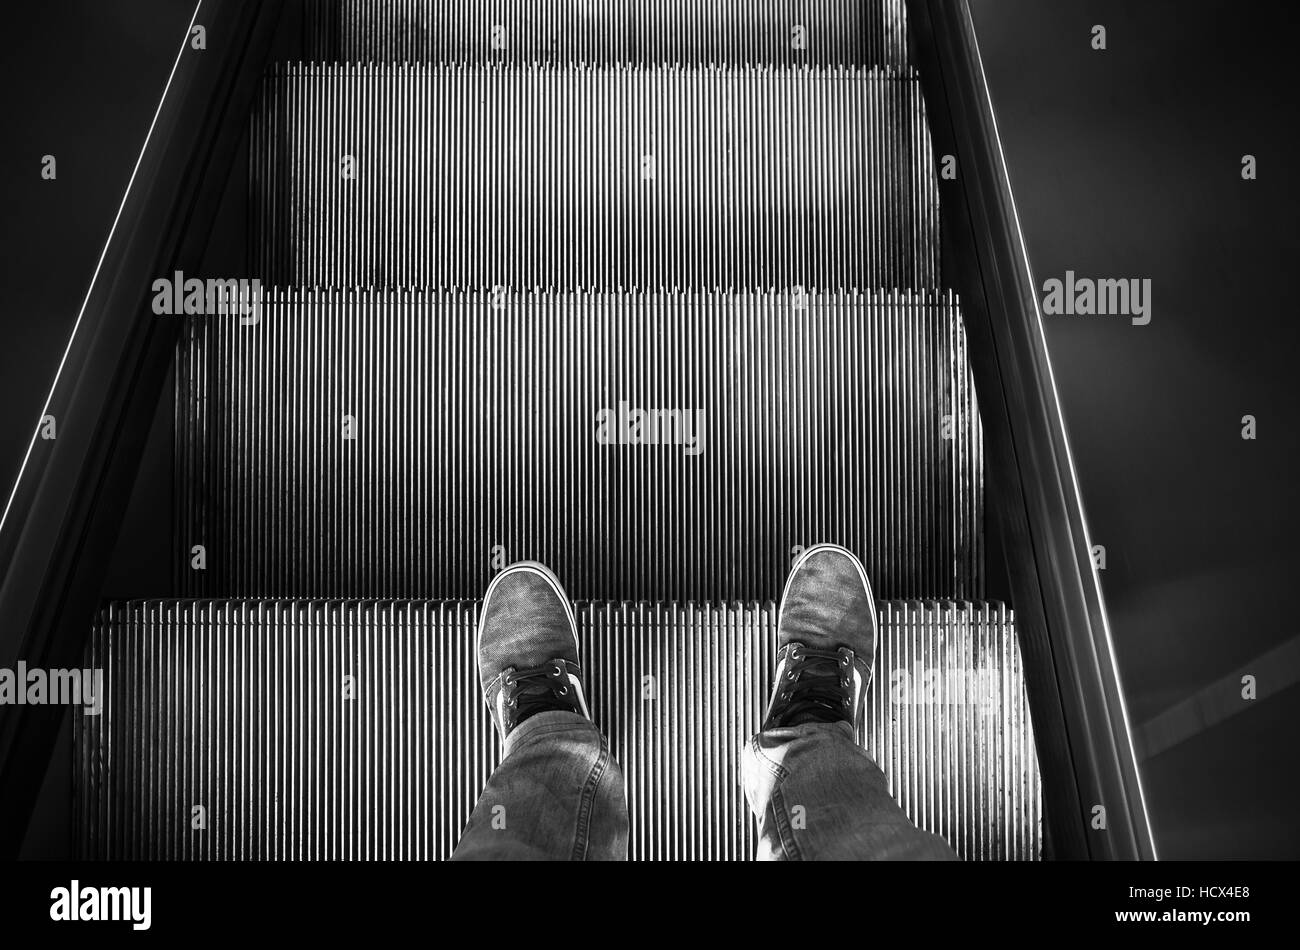 Male feet in canvas shoes stand on escalator stairs, black and white - Stock Image